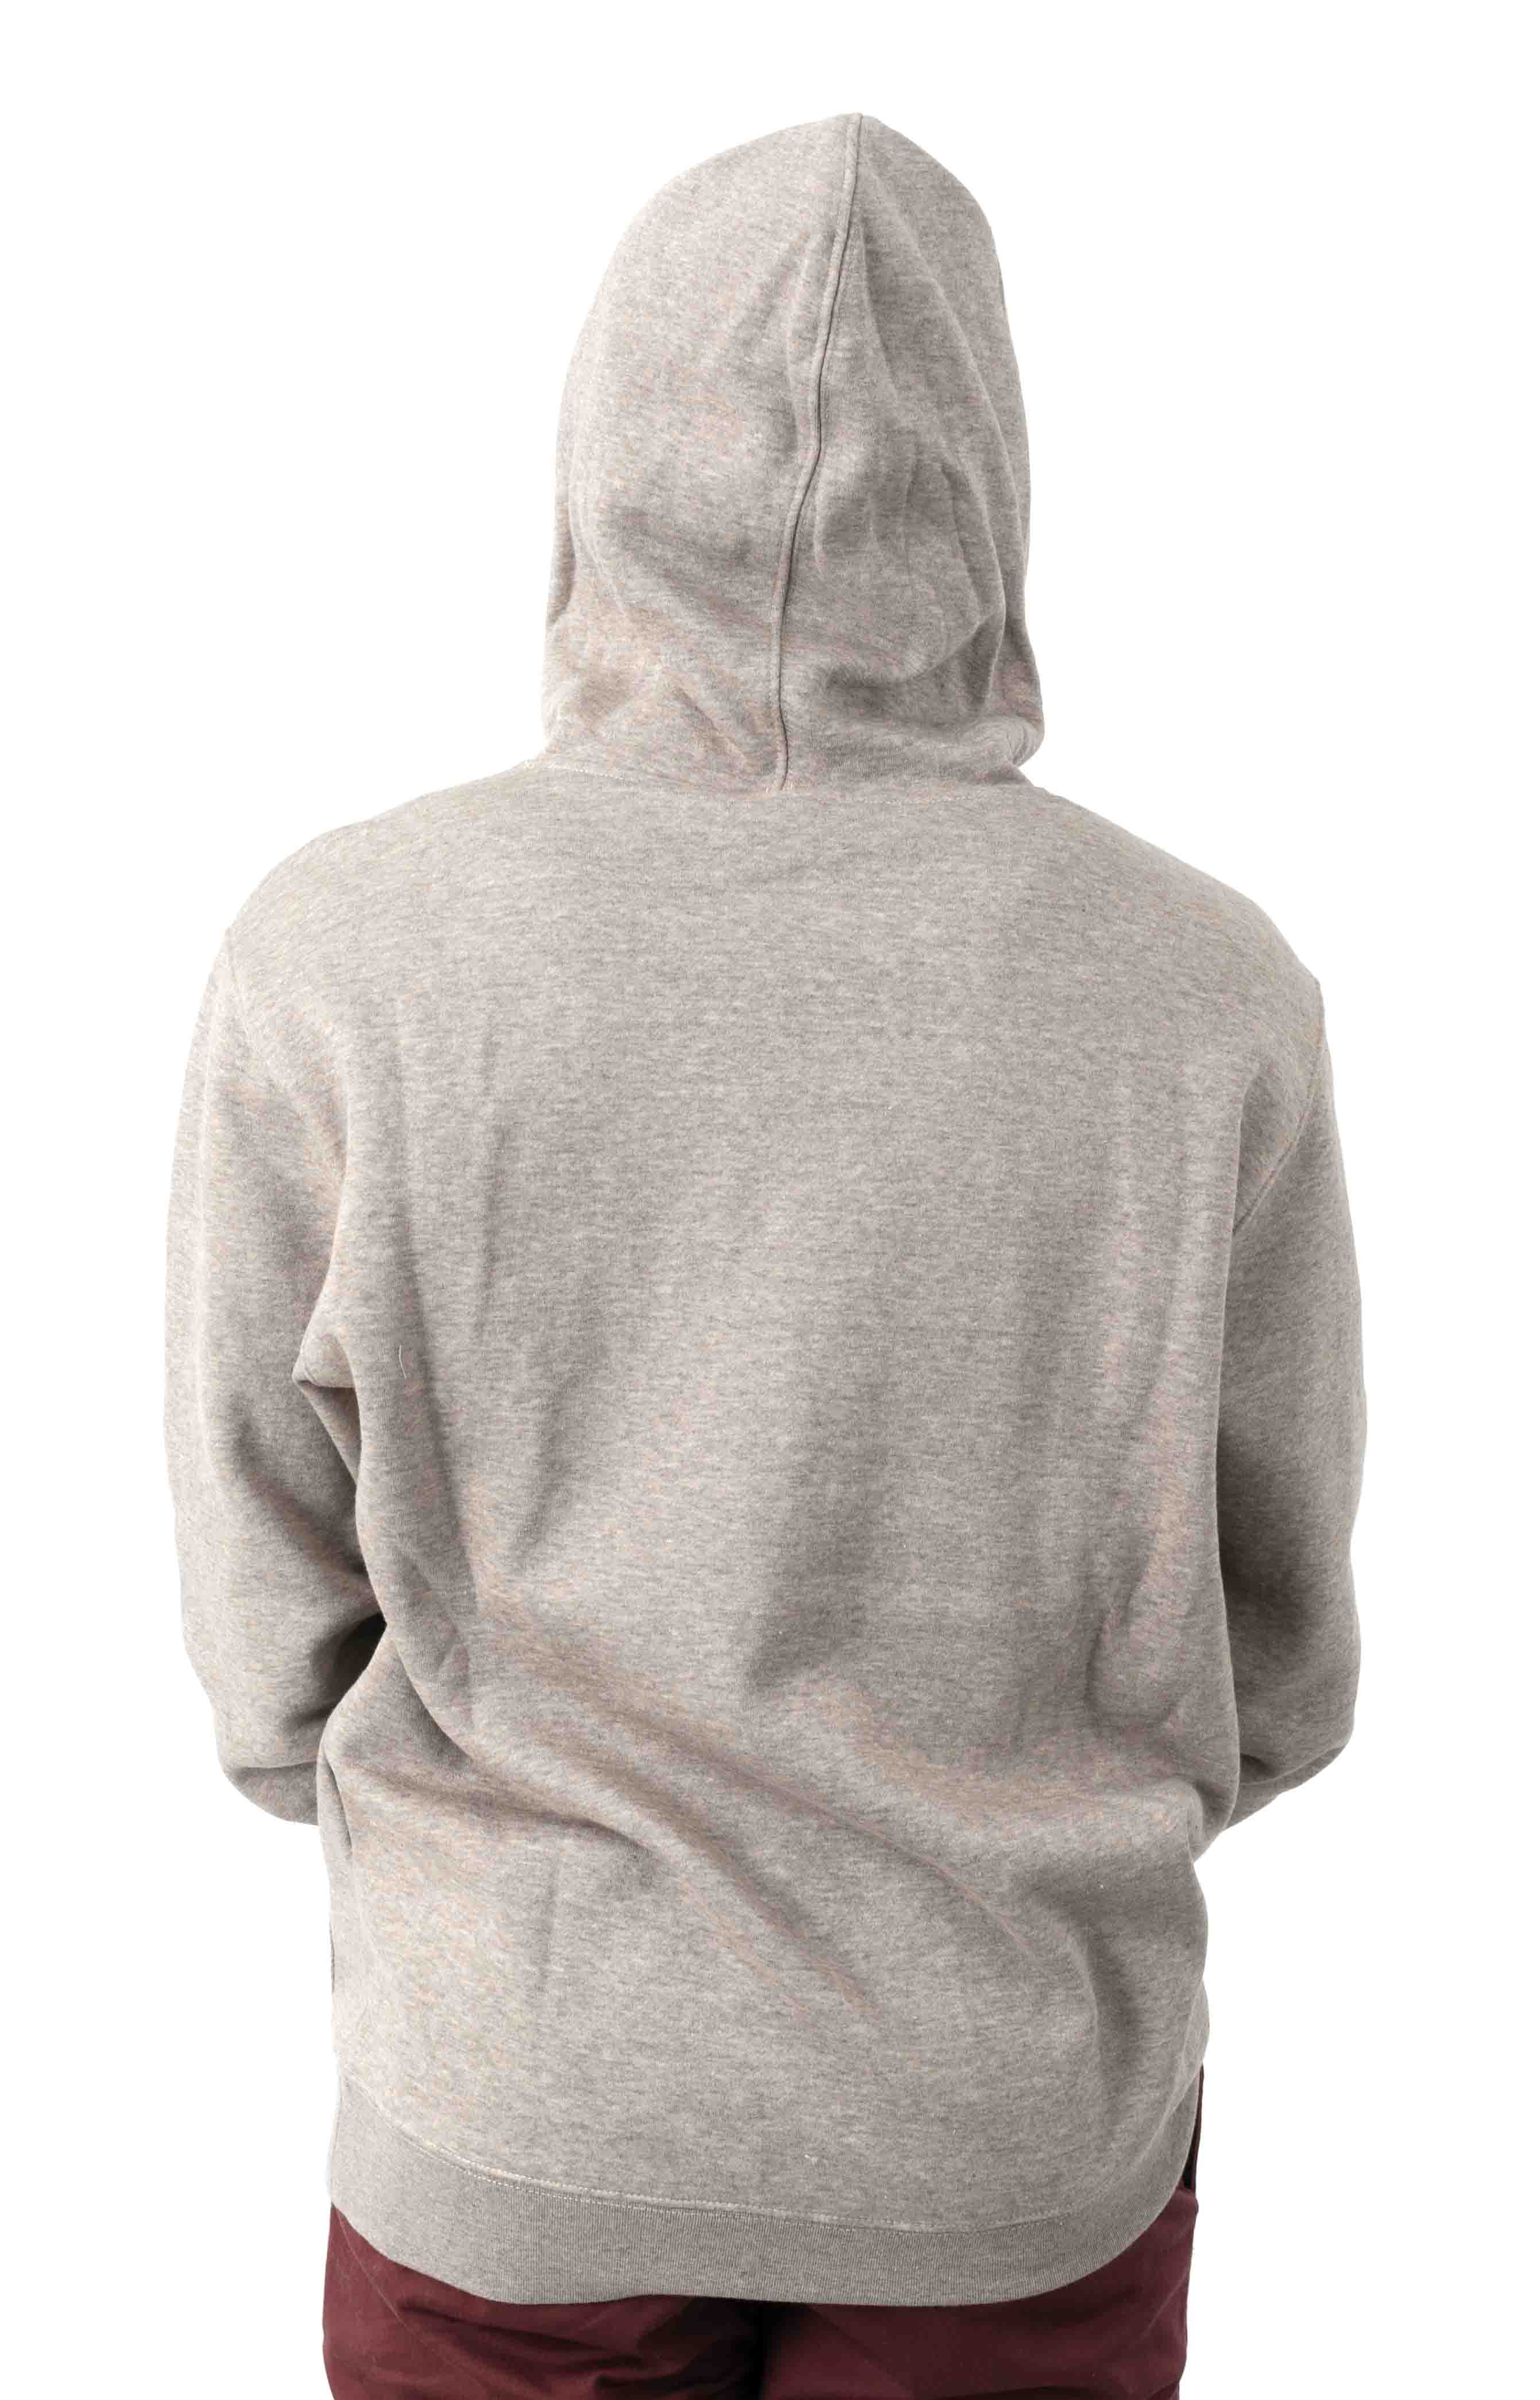 Big RVCA Pullover Hoodie - Khaki Heather  3